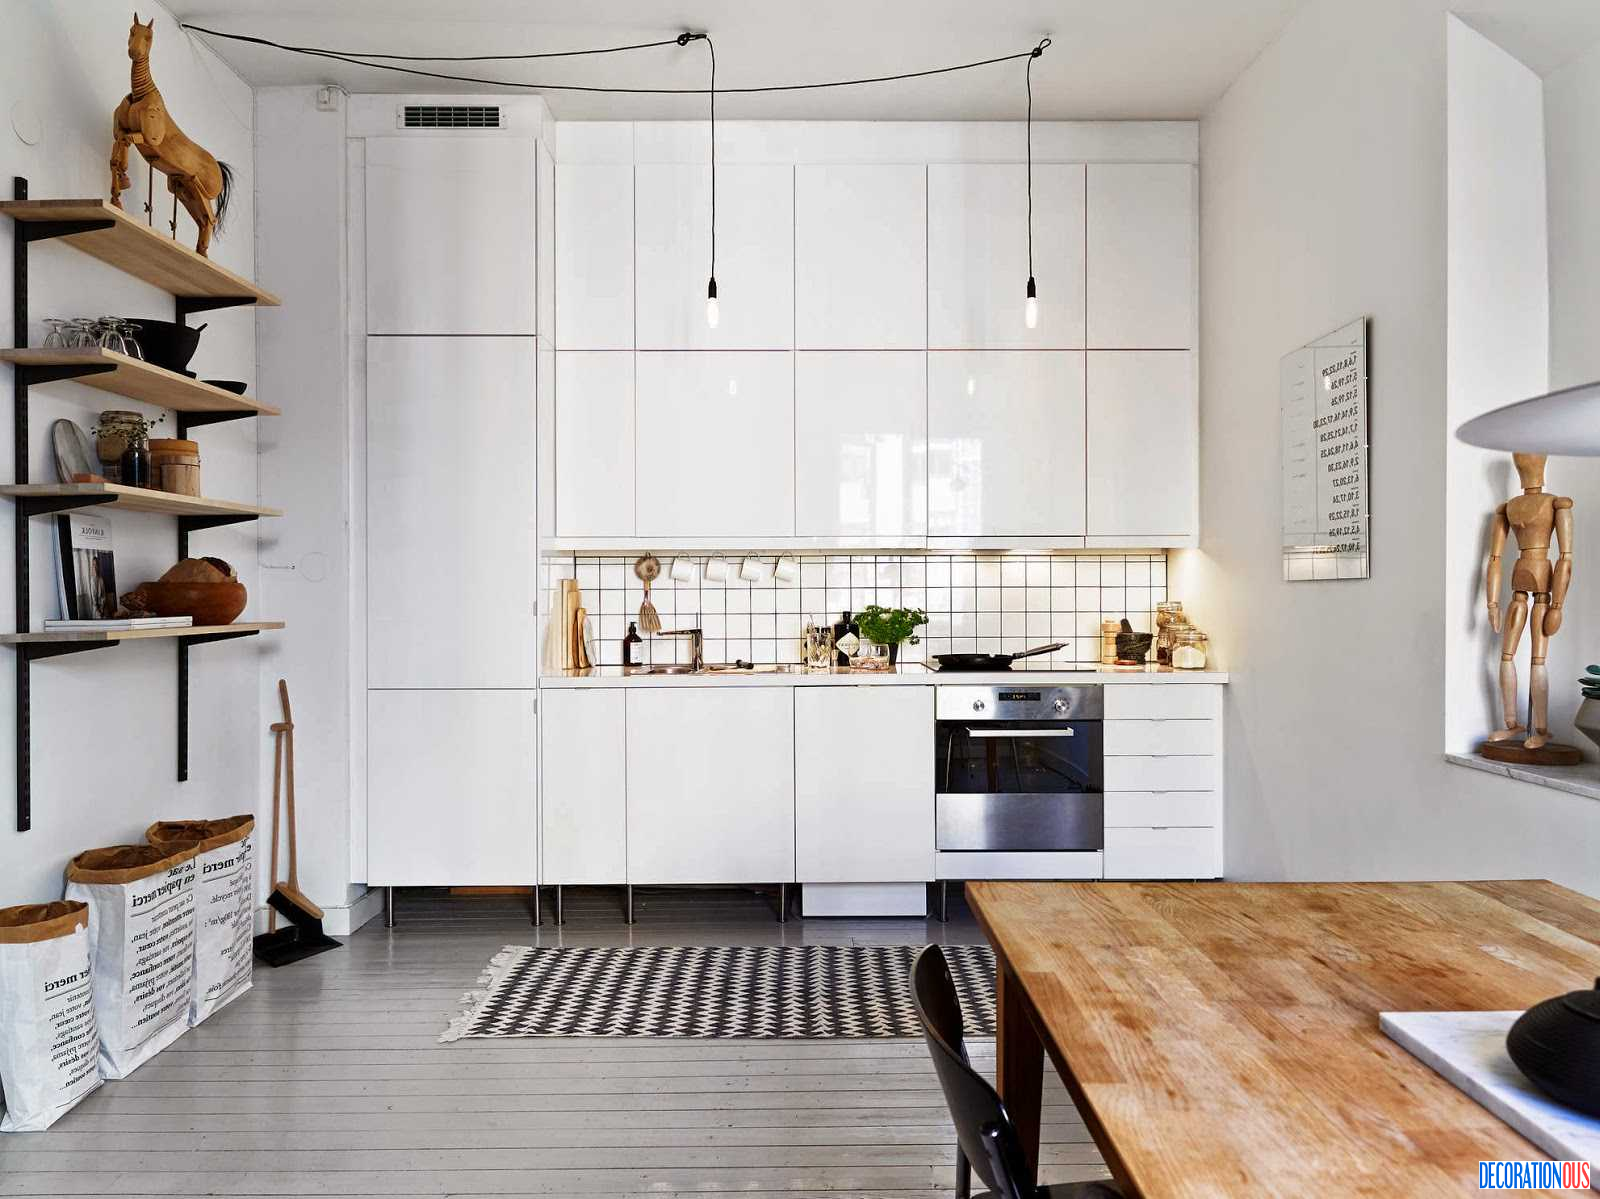 An Apartment With A Zest For Show! - http://www.decorationous.com ...